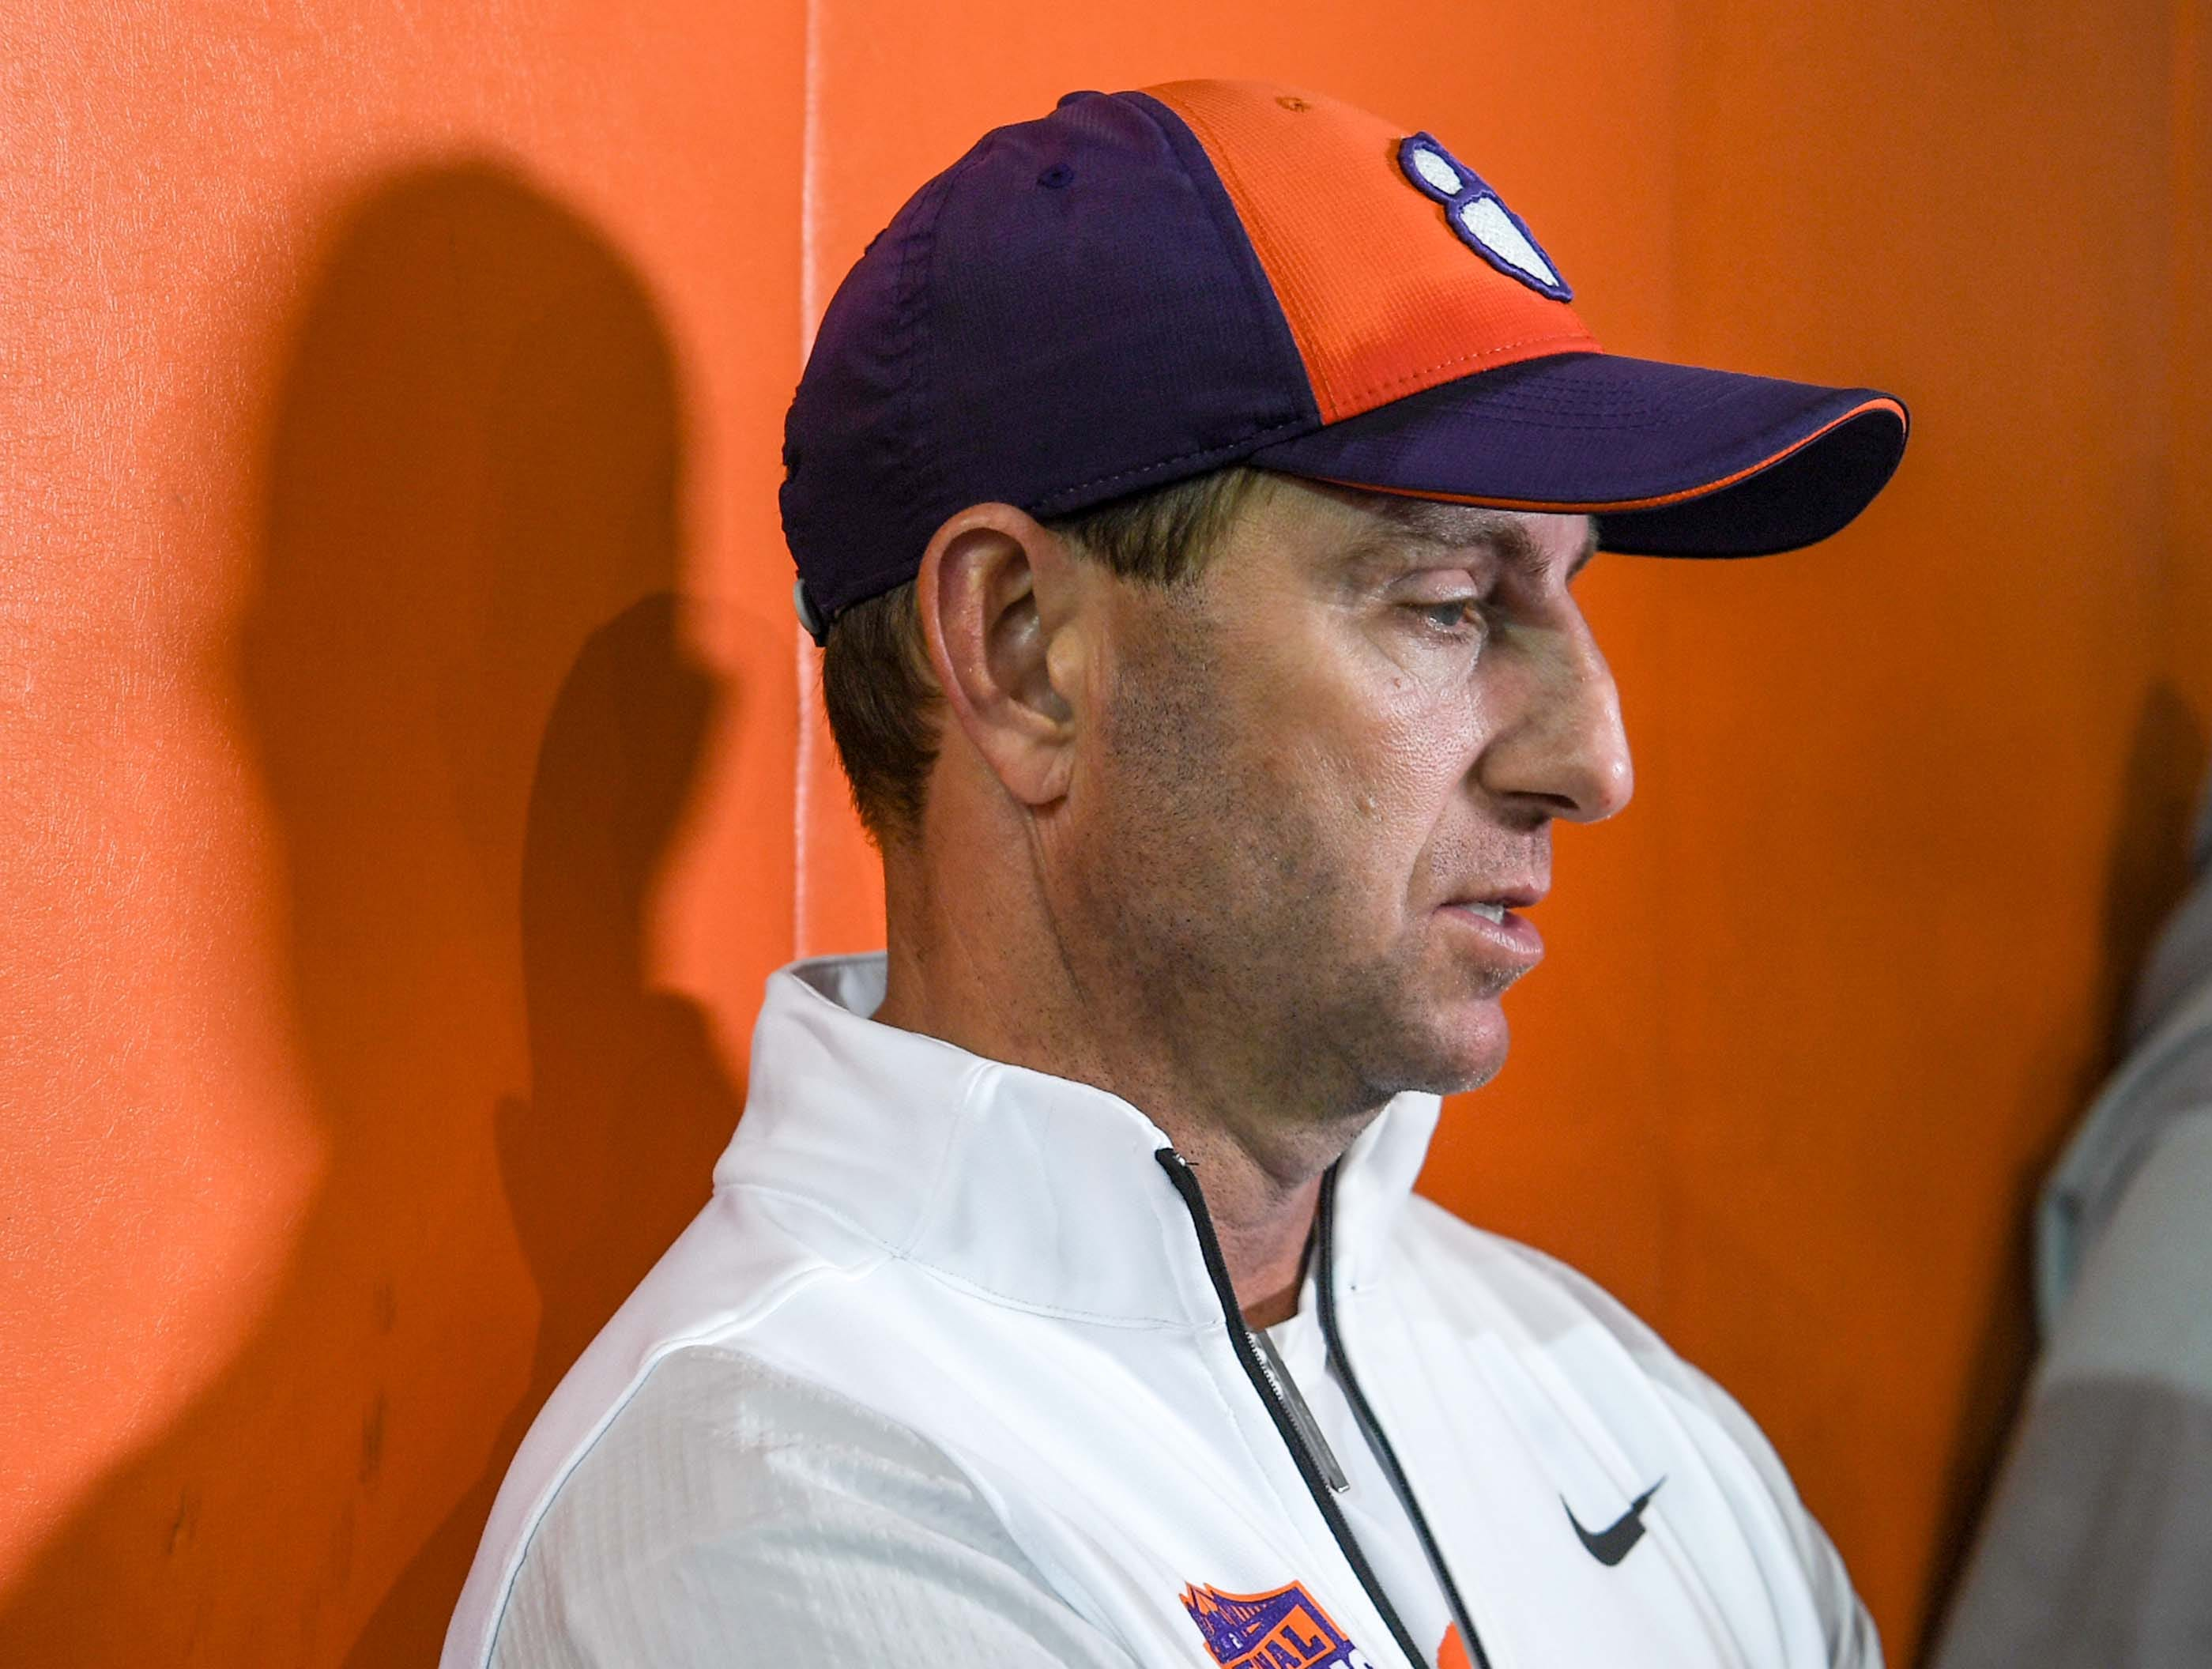 Clemson Head Coach Dabo Swinney speaks with media after practice at the Poe Indoor Facility in Clemson Monday.